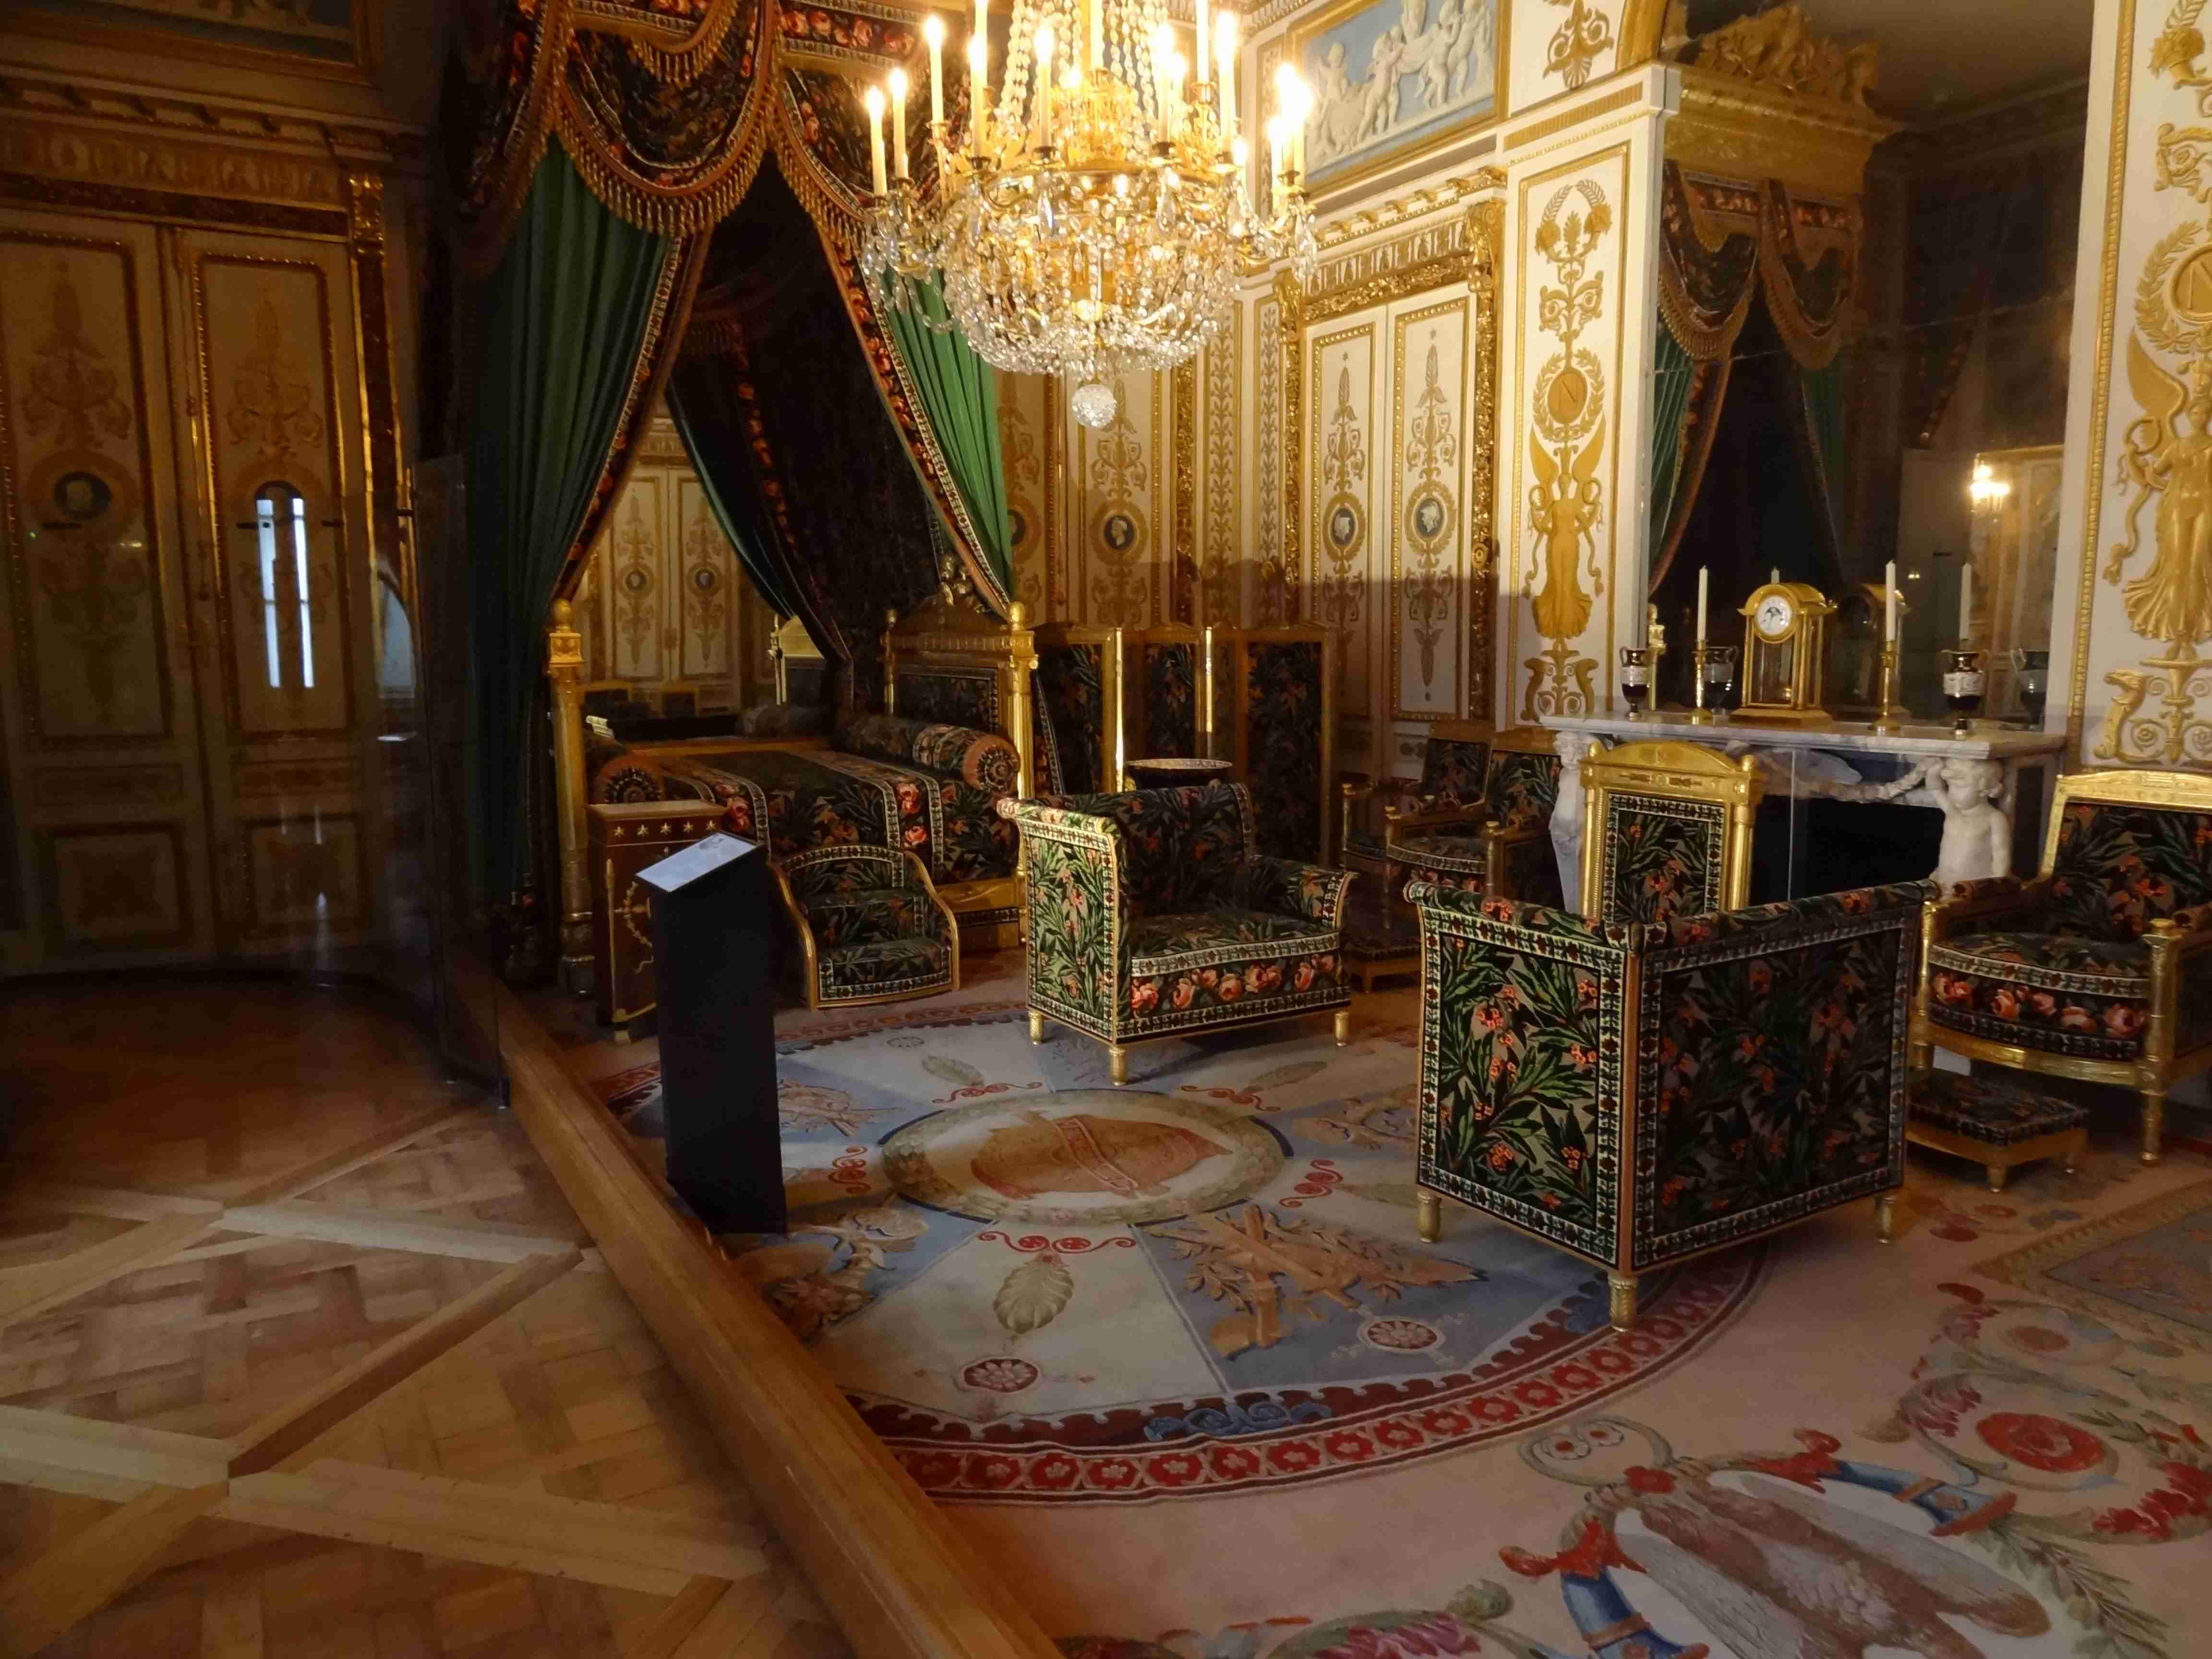 chambre de napol on dans le ch teau de fontainebleau en france xviiie si cle grandi. Black Bedroom Furniture Sets. Home Design Ideas